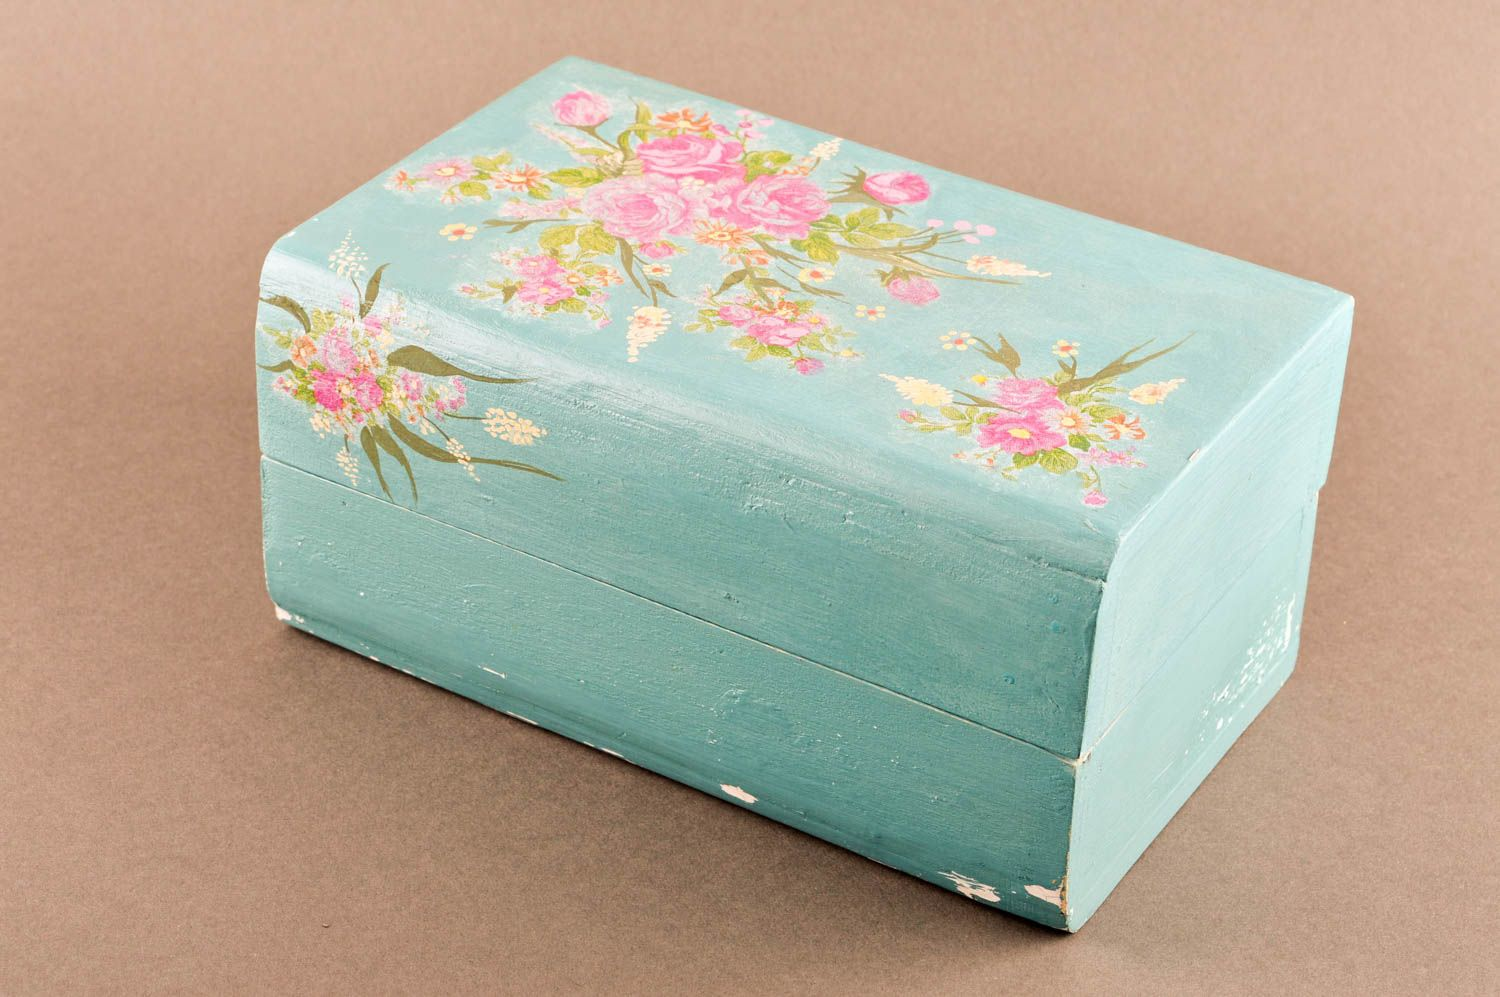 MADEHEART Unusual handmade jewelry box vintage wooden box design